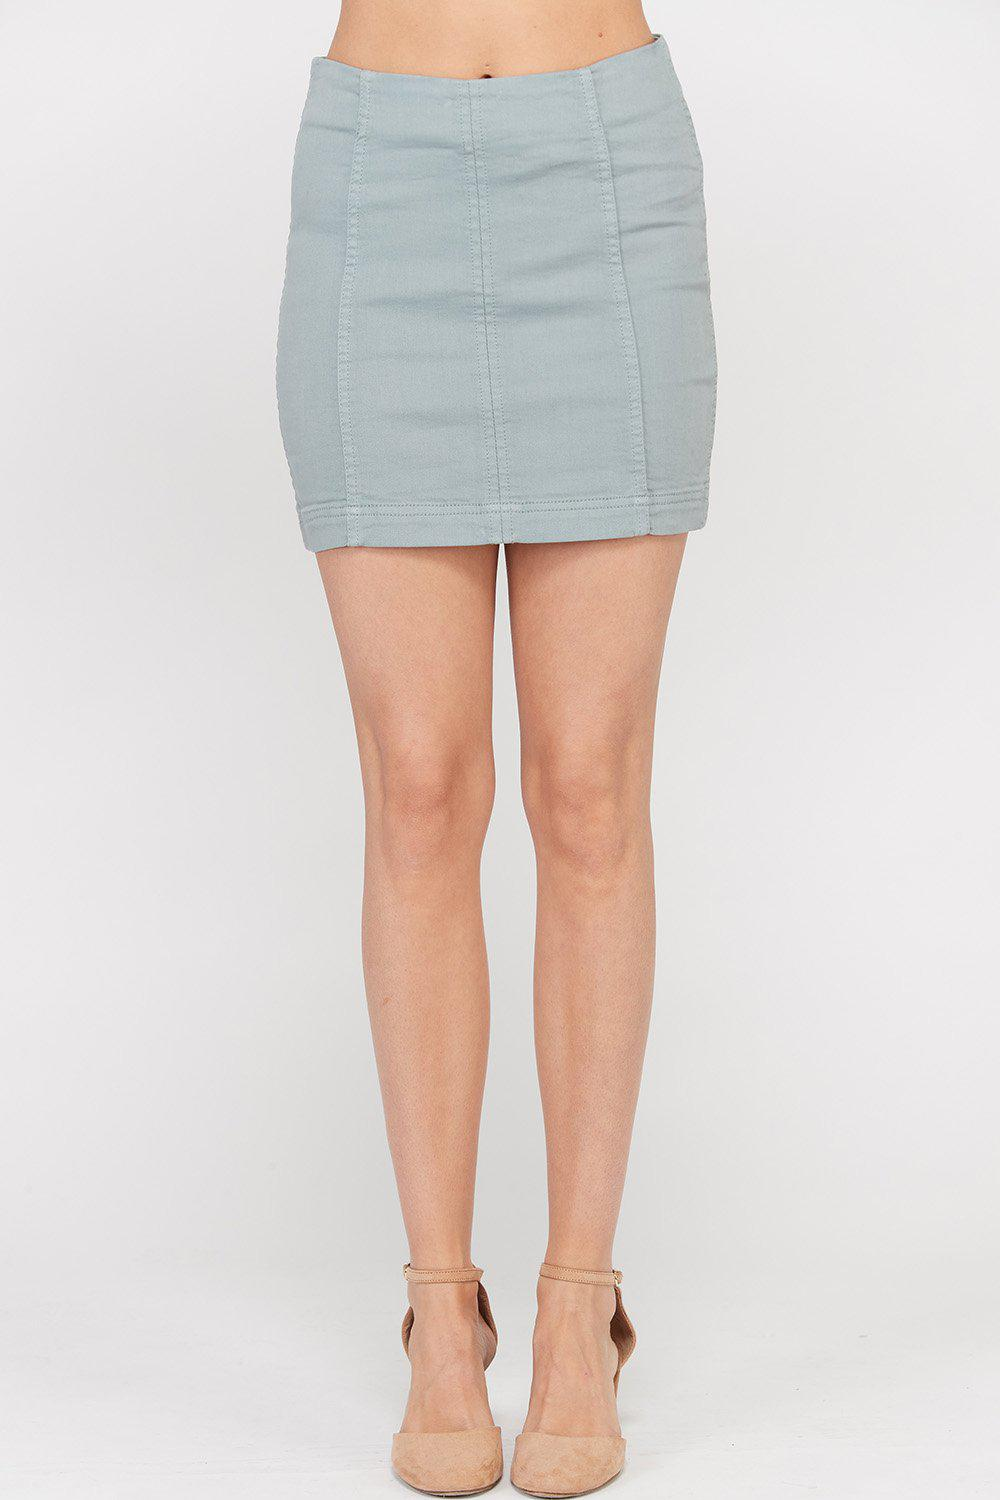 Willia 8-Panel Cotton Sateen Mini Skirt - G. Mint